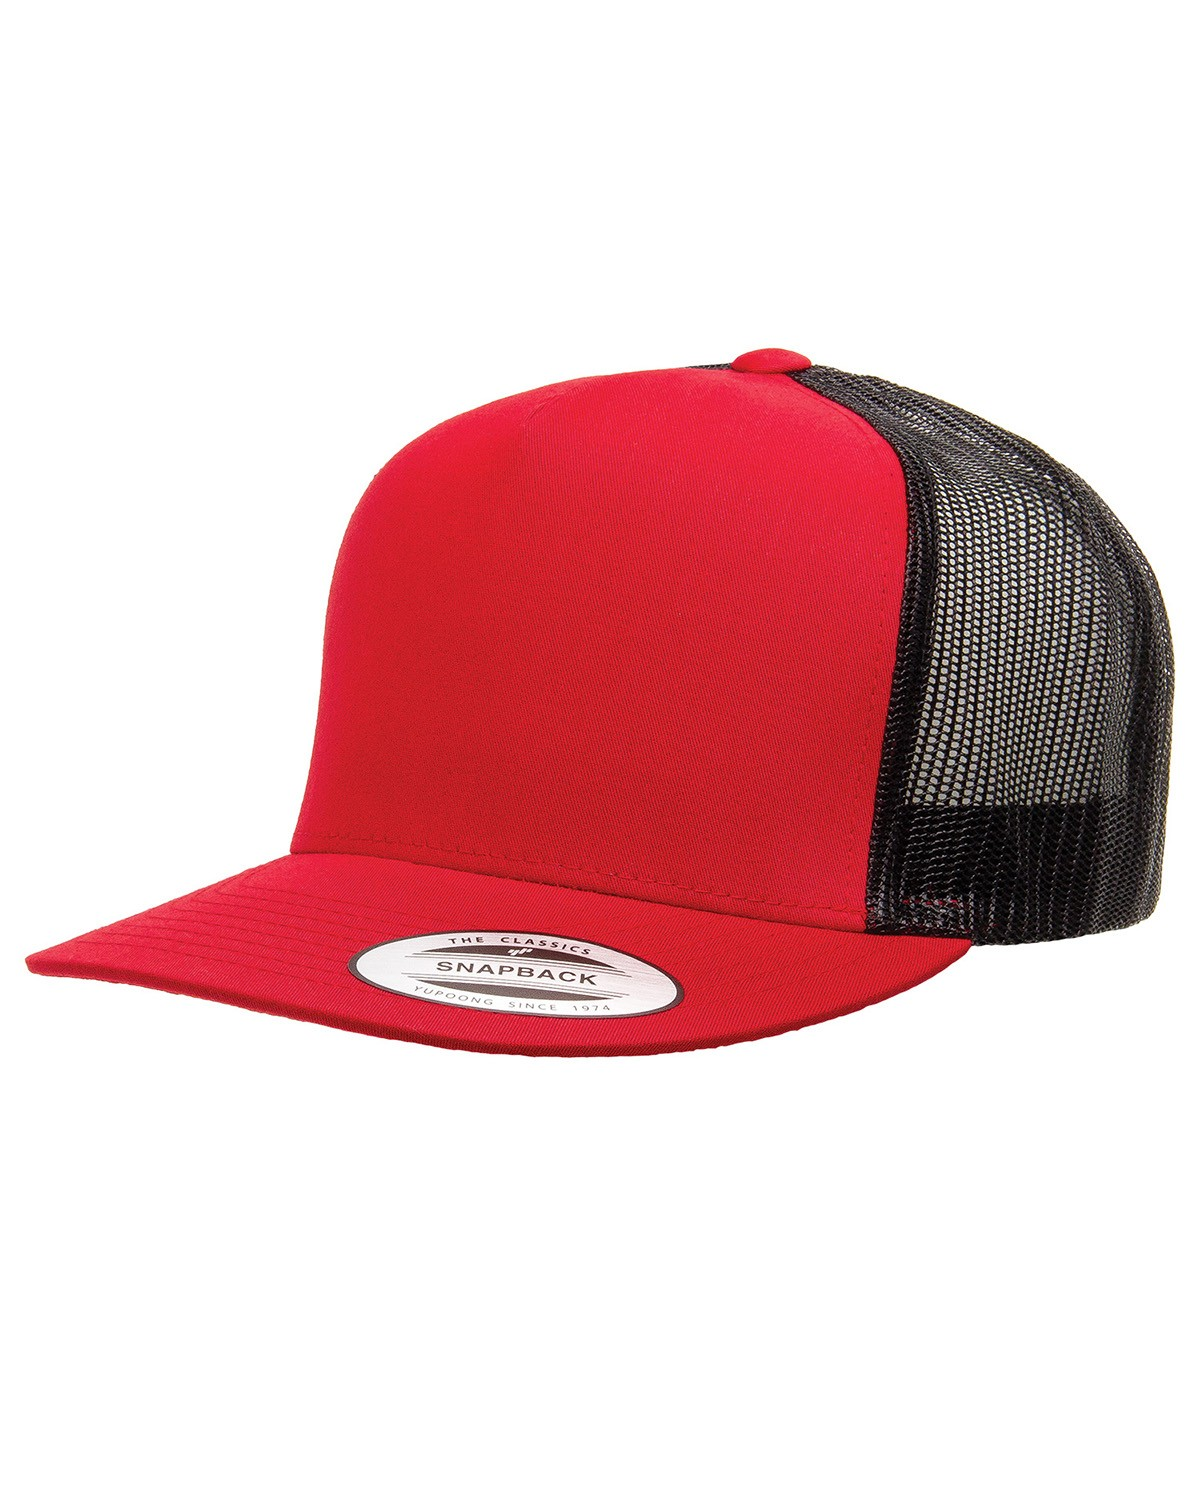 6006 Yupoong RED/BLACK